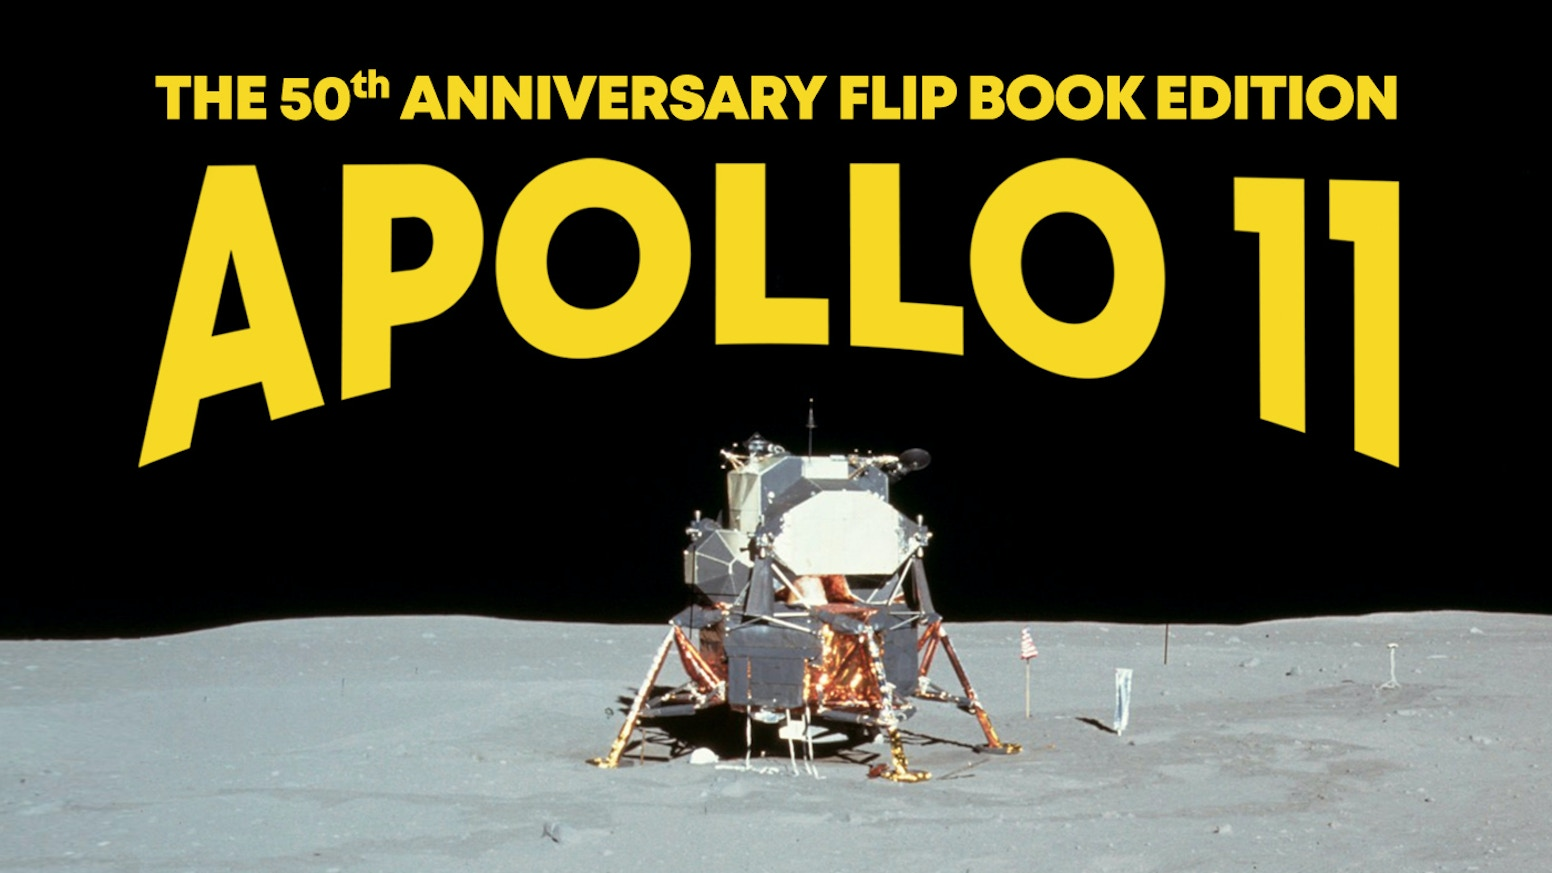 A remarkable Flip Book Collection celebrating the 50th Anniversary of the First Moon Landing